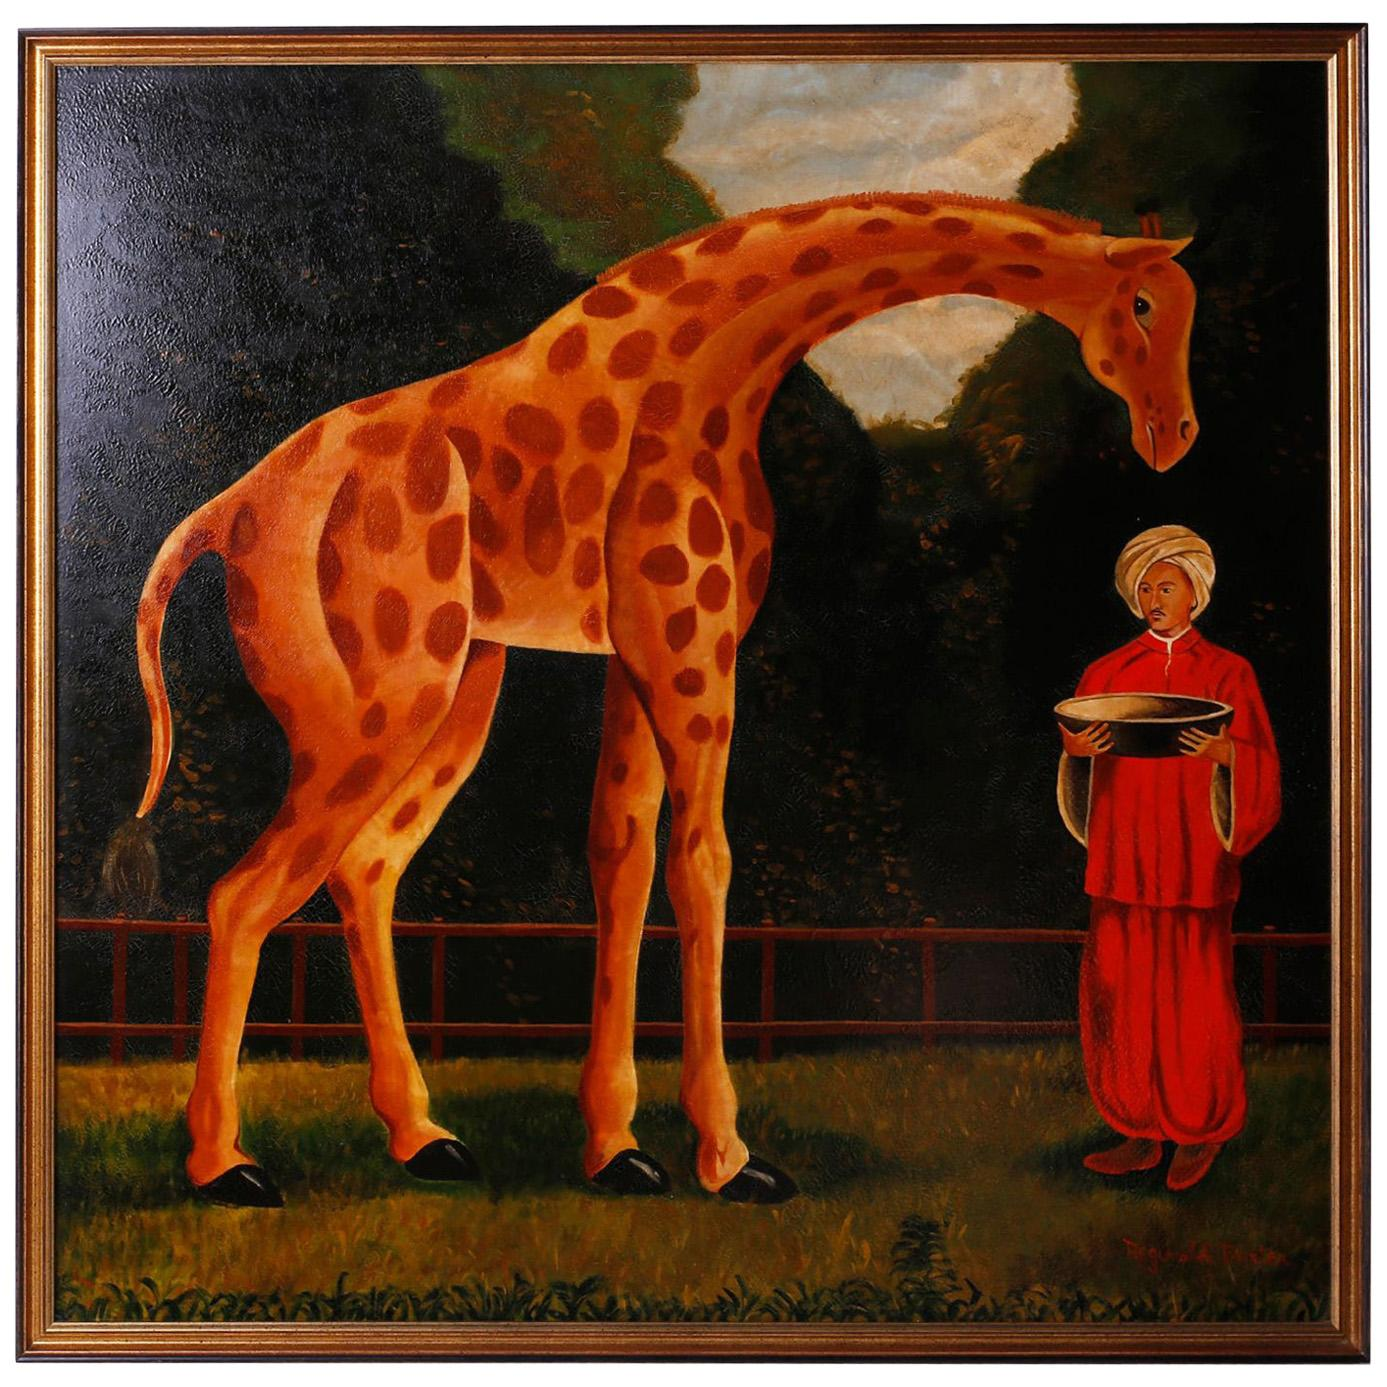 Oil Painting on Canvas of a Giraffe by Reginald Baxter